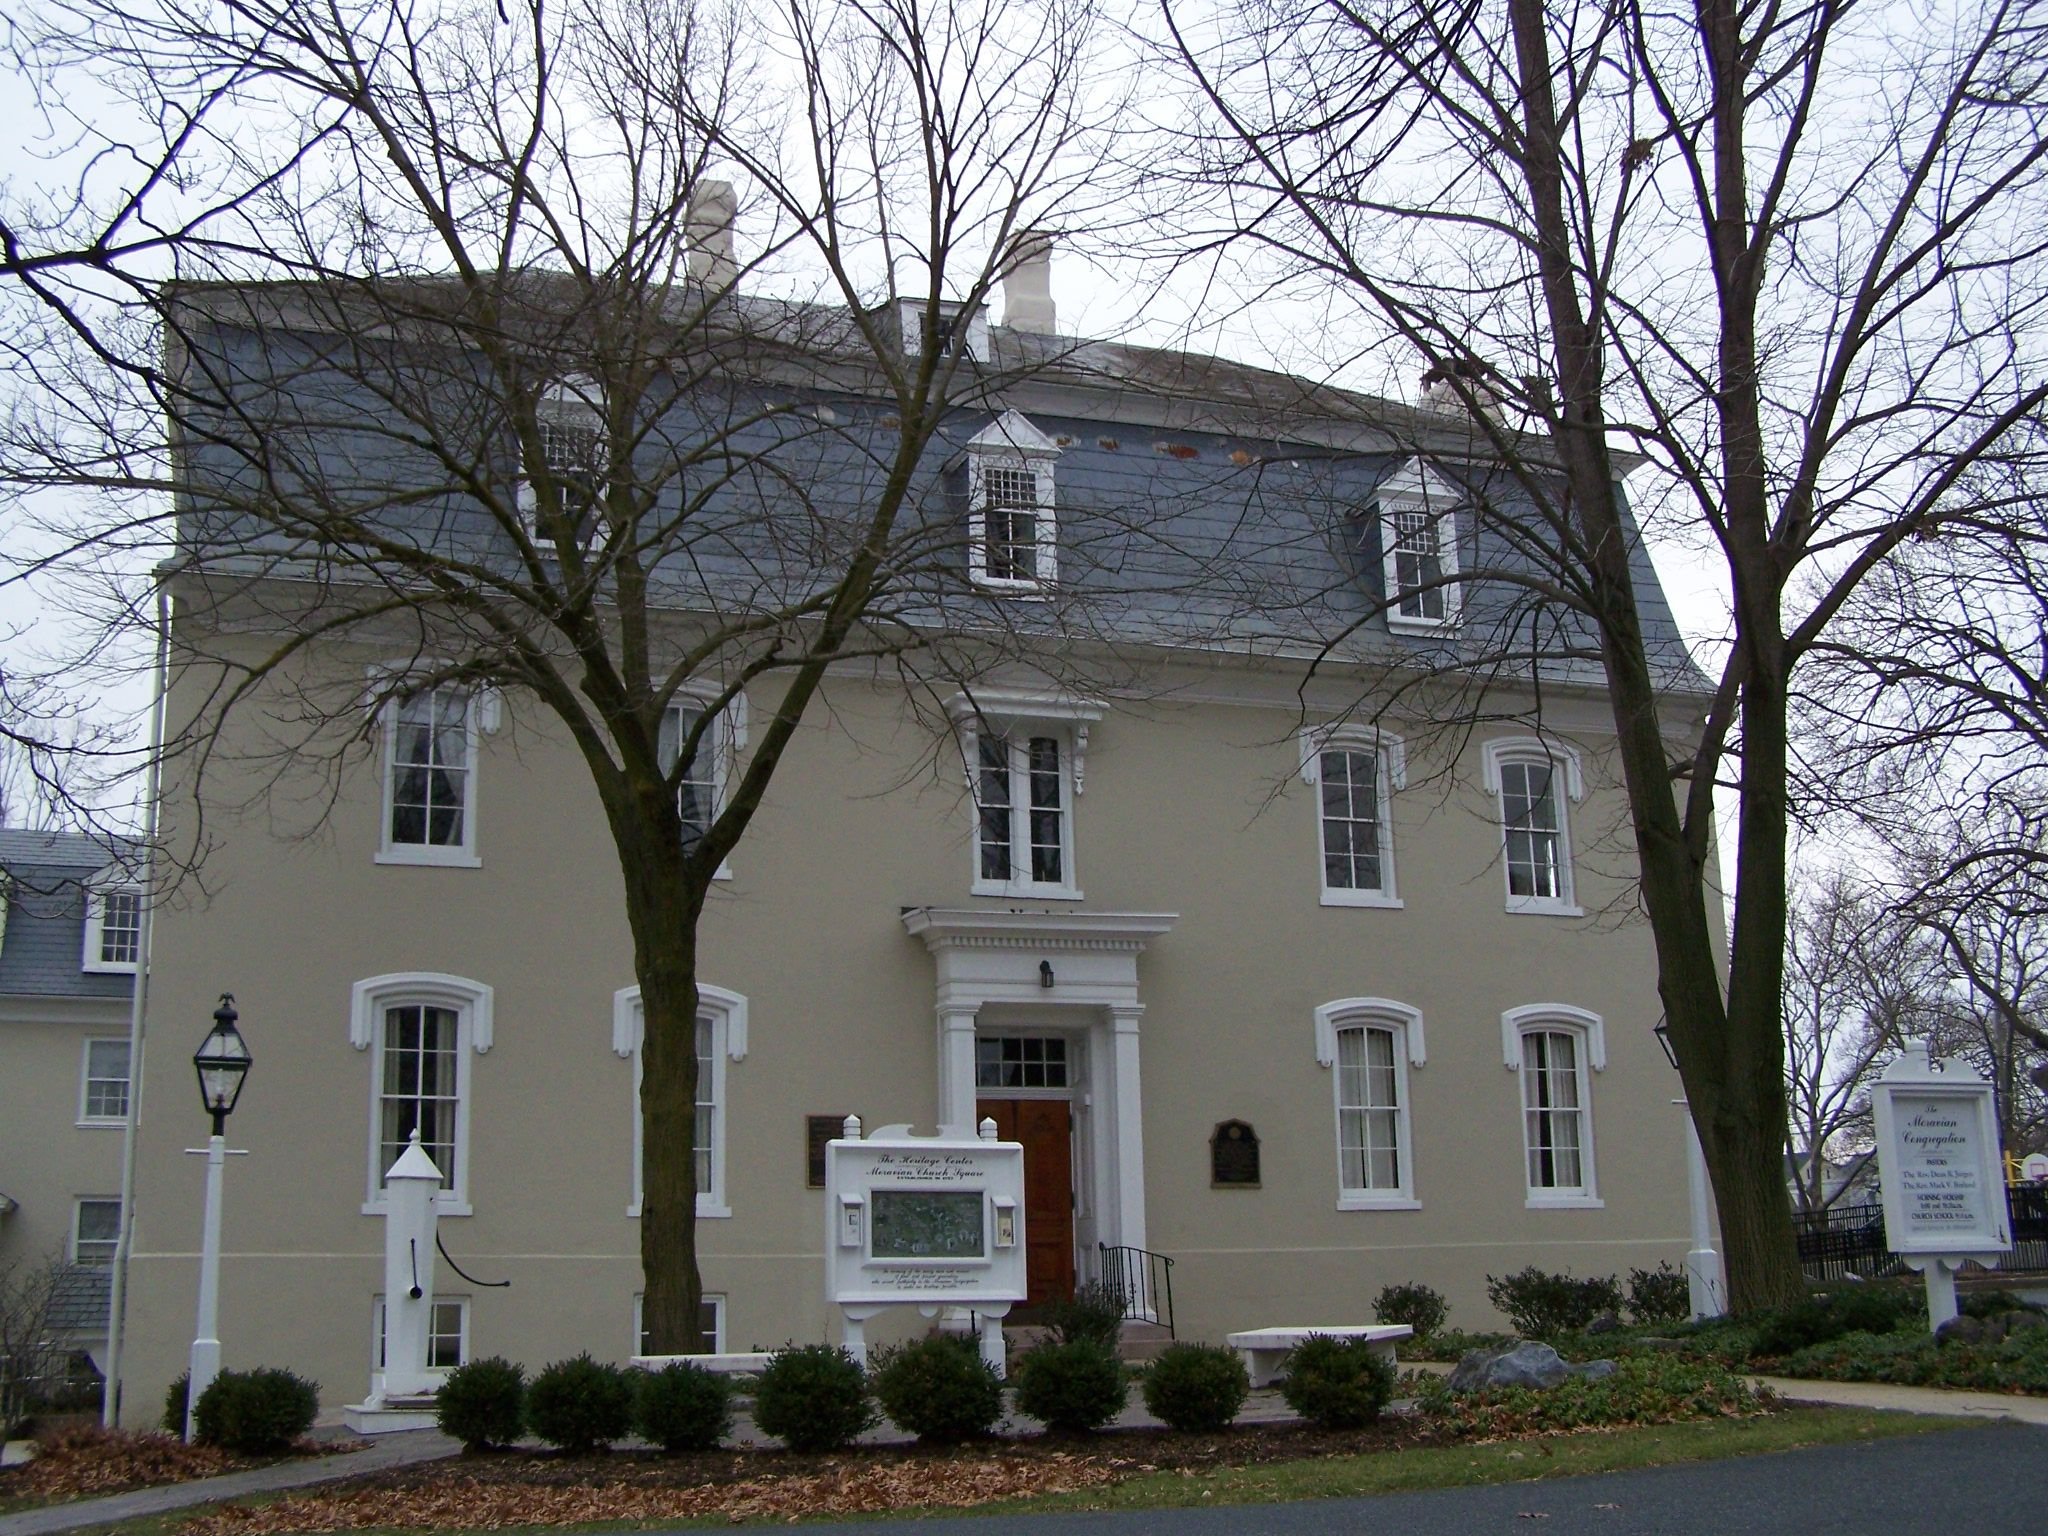 Brethren's House today, site of the Lititz Pharmacopoeia historical marker.